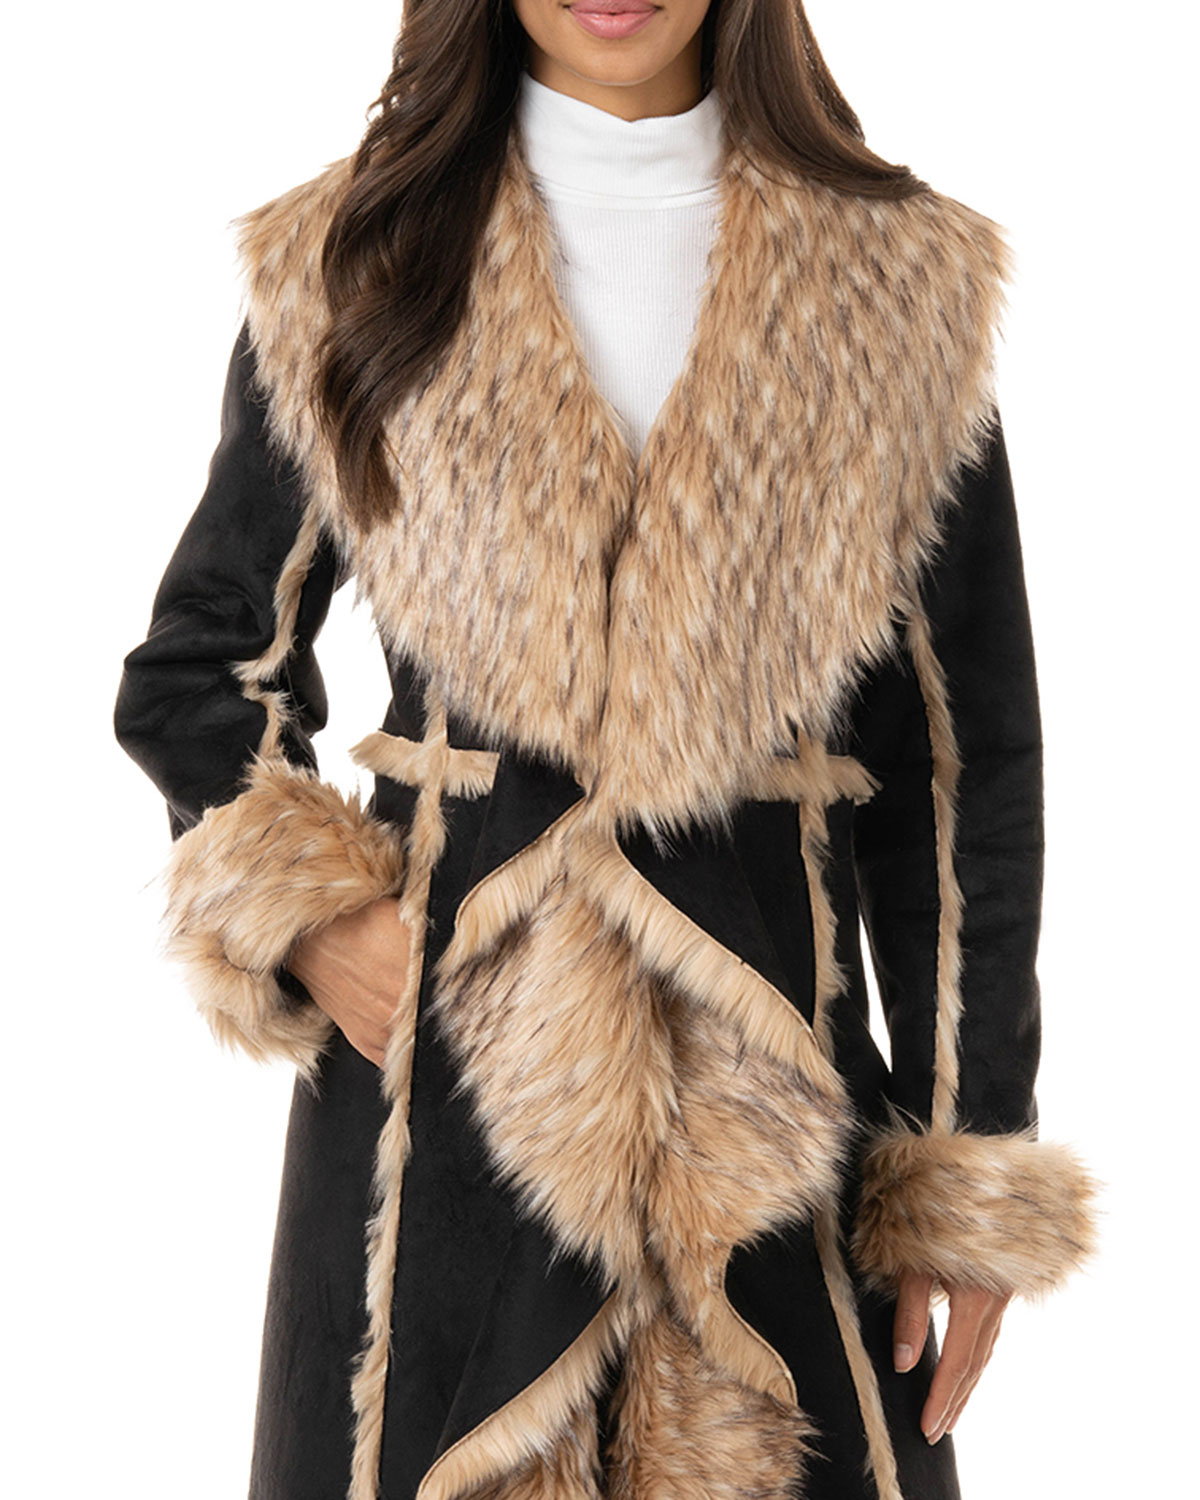 Fabulous Furs Cascade Faux Suede Faux Fur-Trim Full Coat